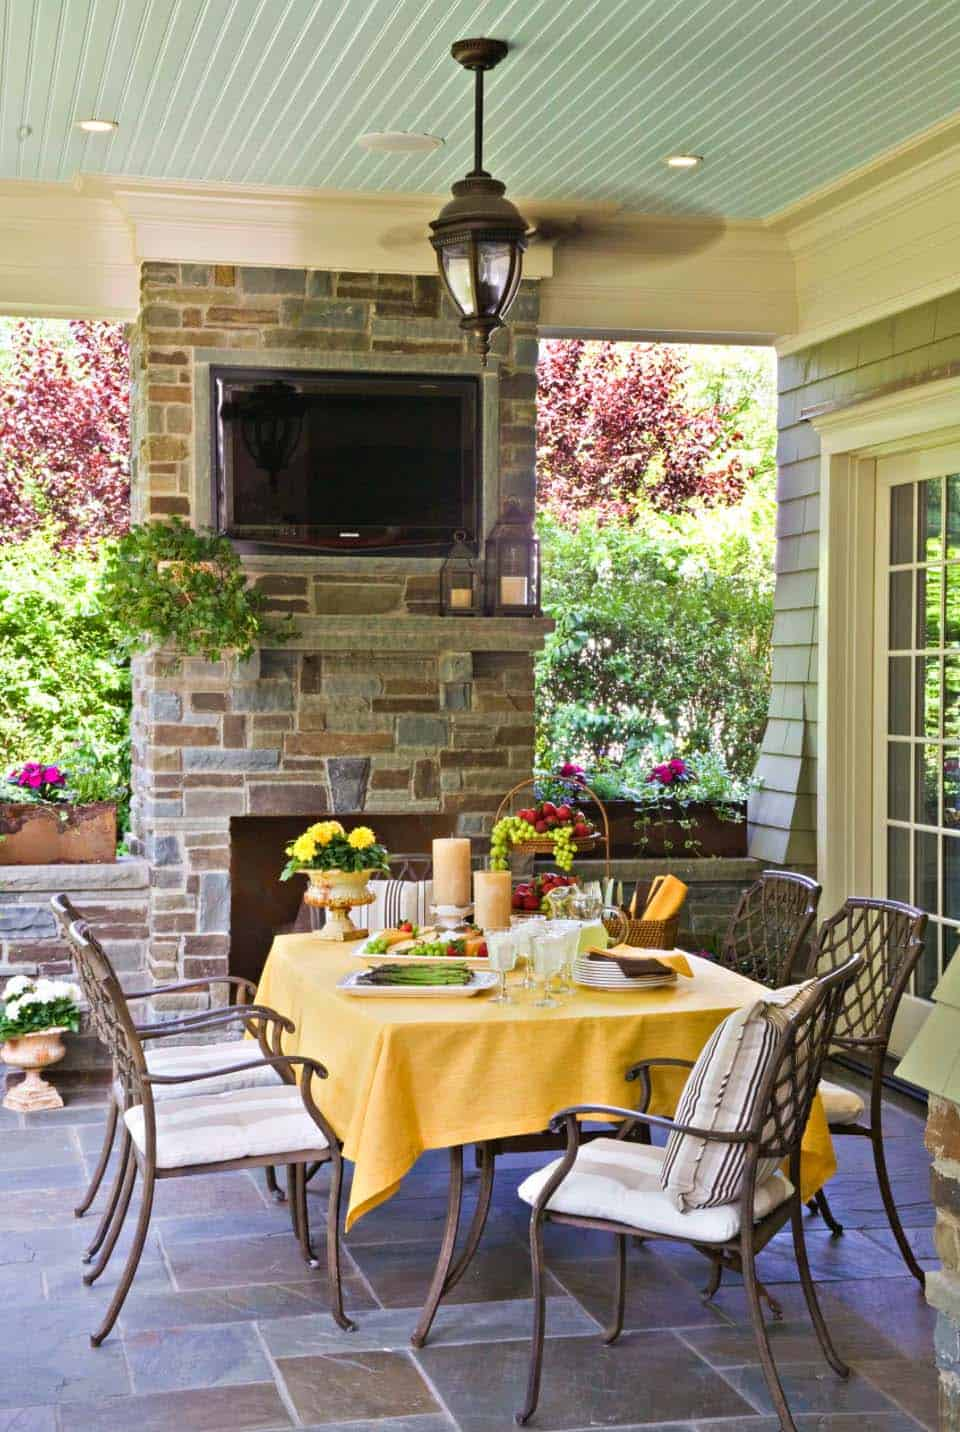 35 Brilliant and inspiring patio ideas for outdoor living ... on Outdoor Living And Patio id=54380